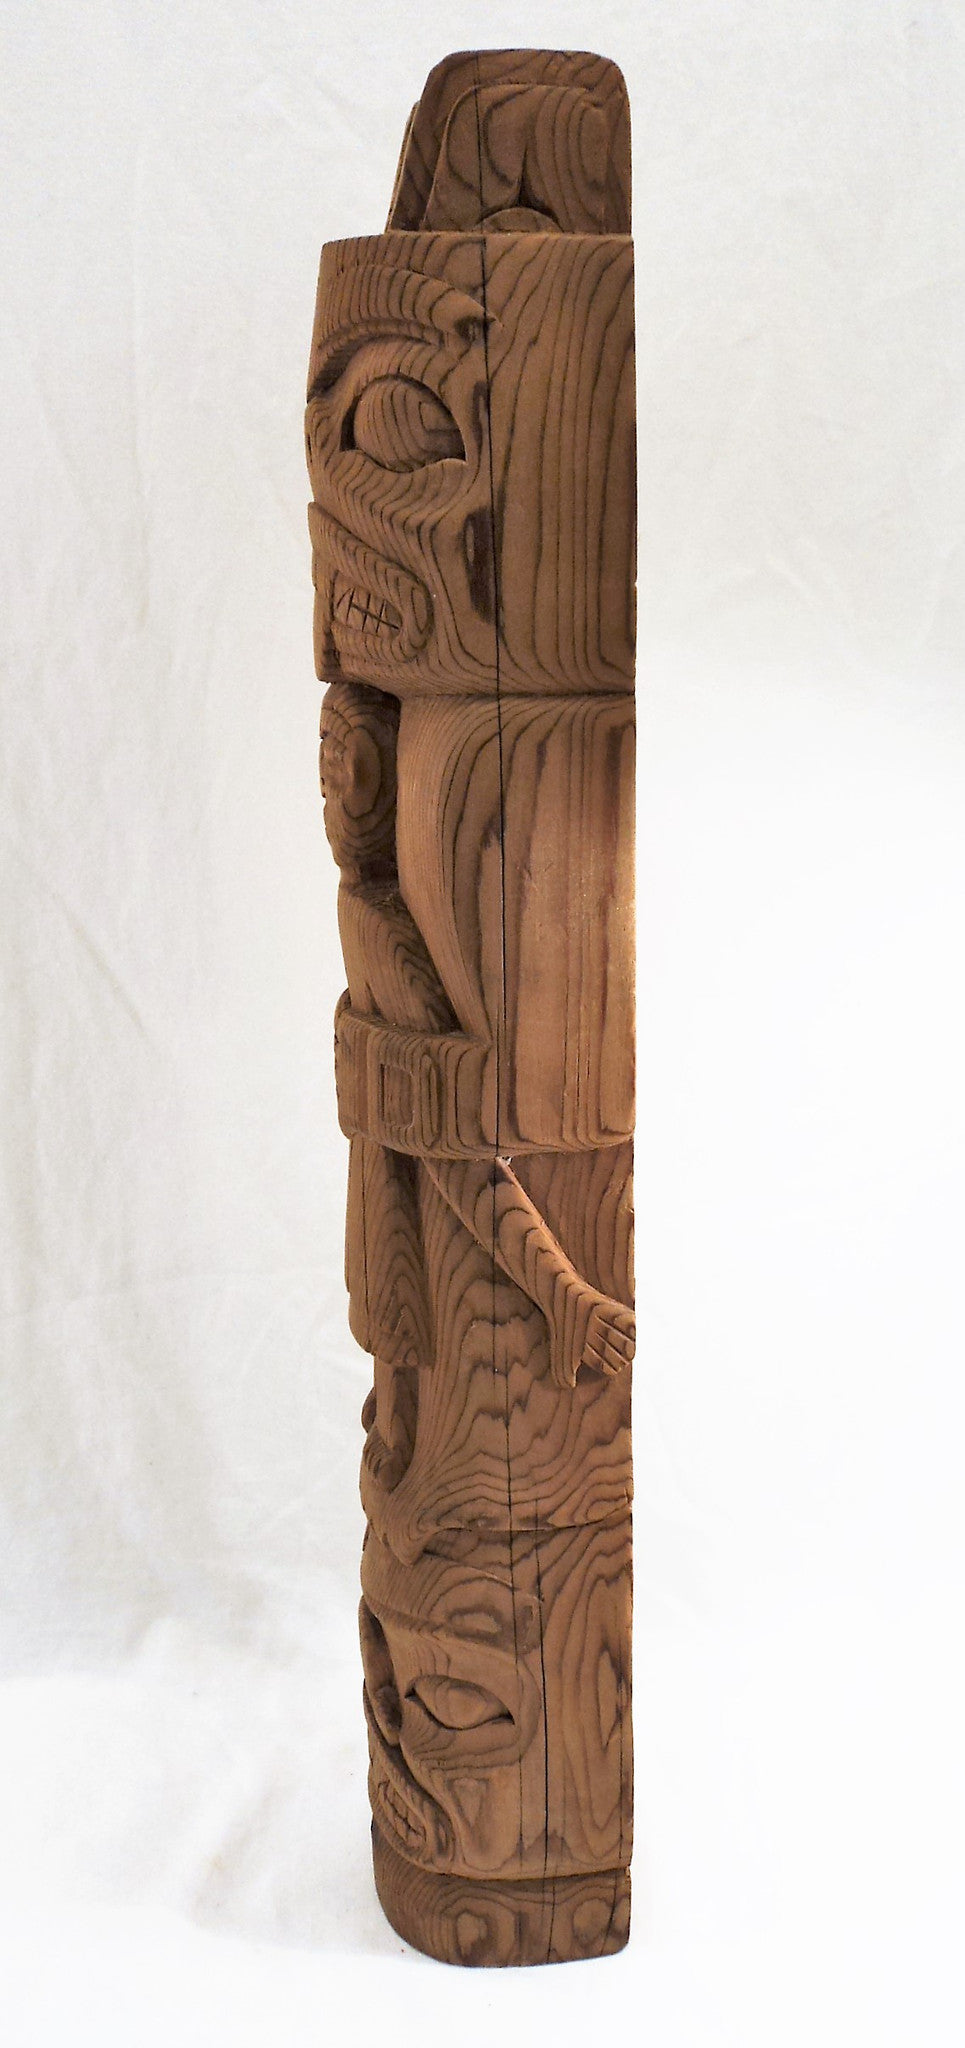 Hand-Carved Haida Wooden Model Totem Pole